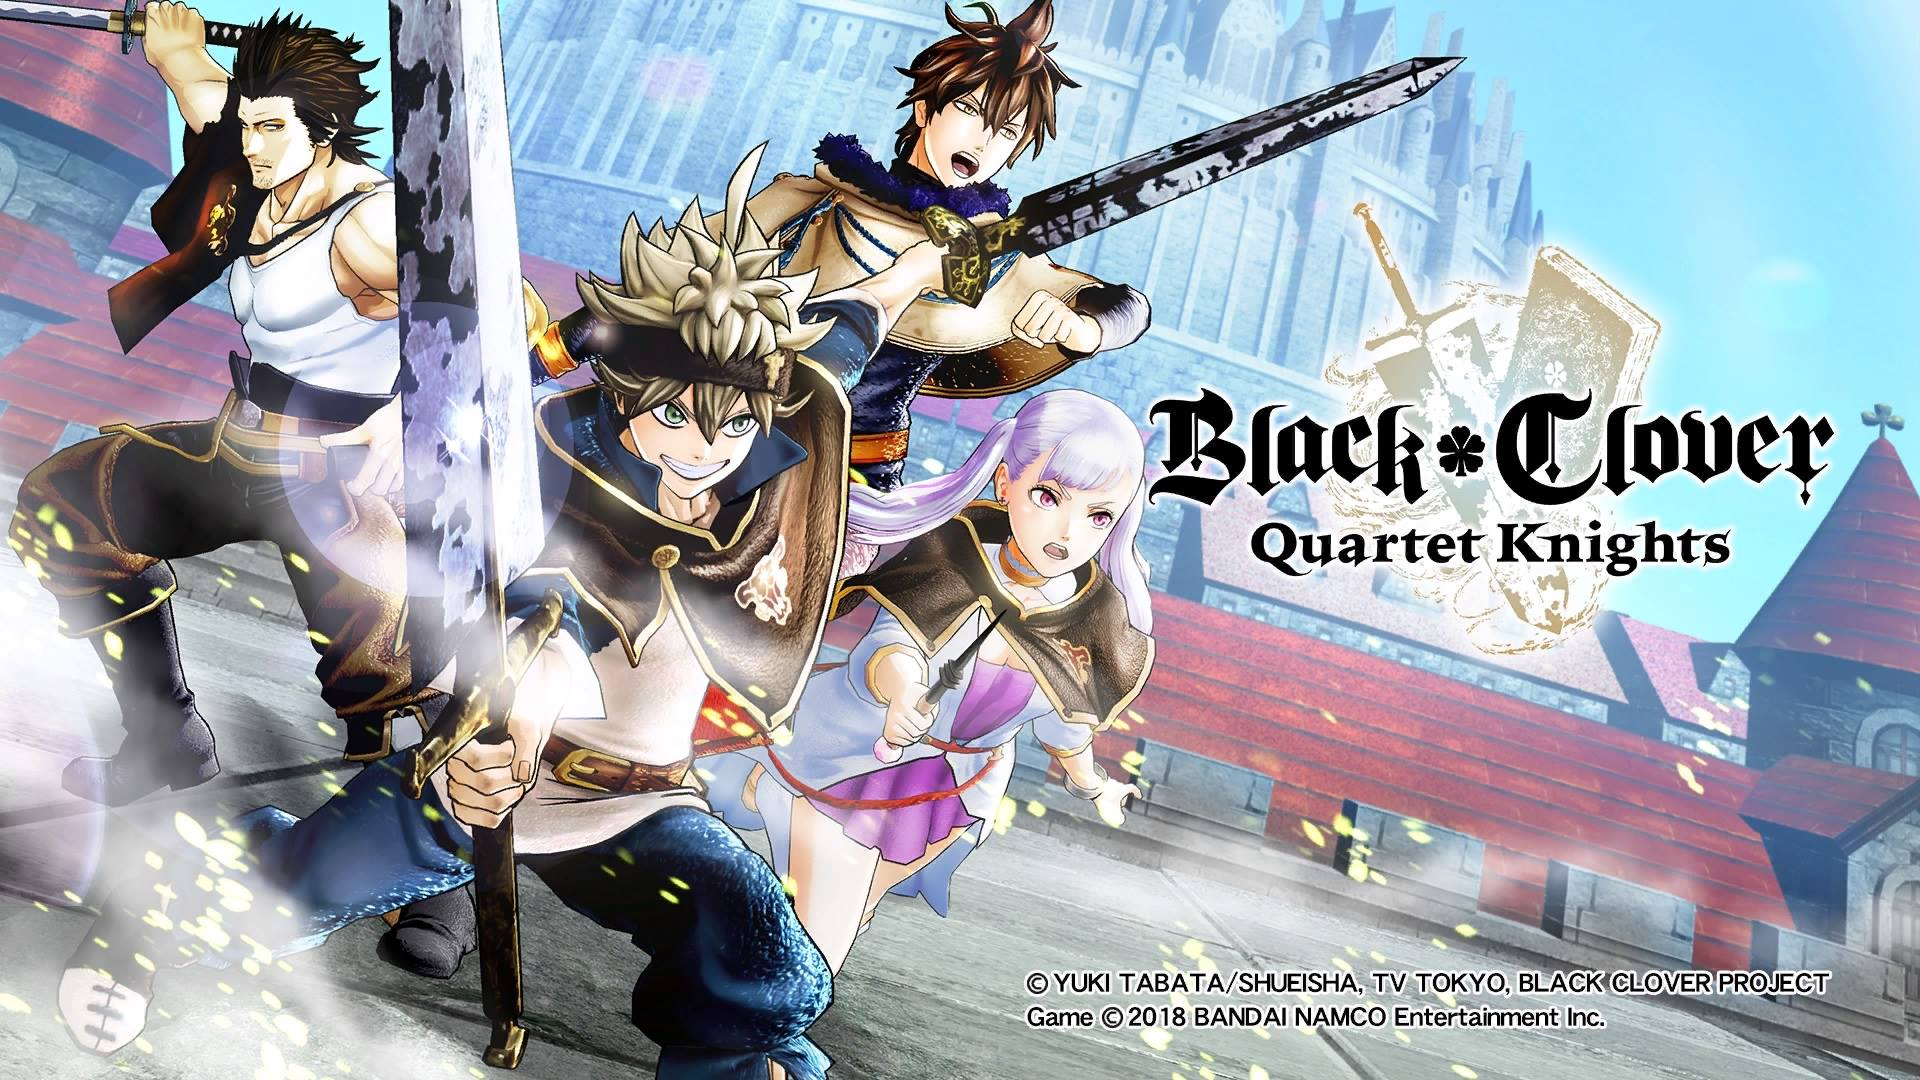 Anime Wallpaper For Ps Vita Black Clover Quartet Knights Review Invision Game Community